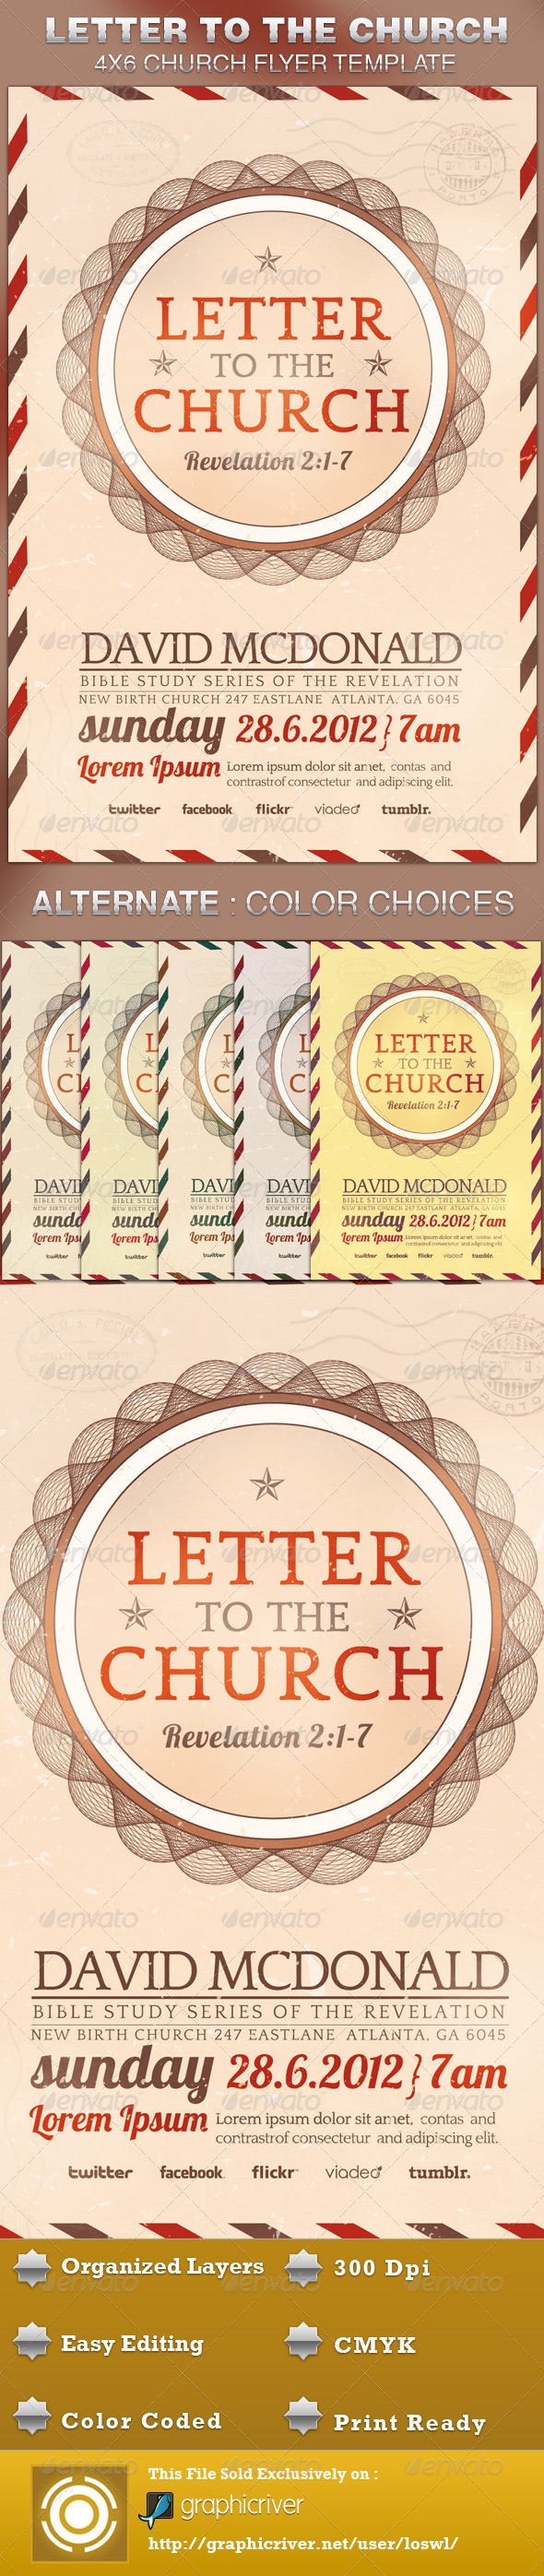 GraphicRiver Letter to the Church Flyer Template 5054309